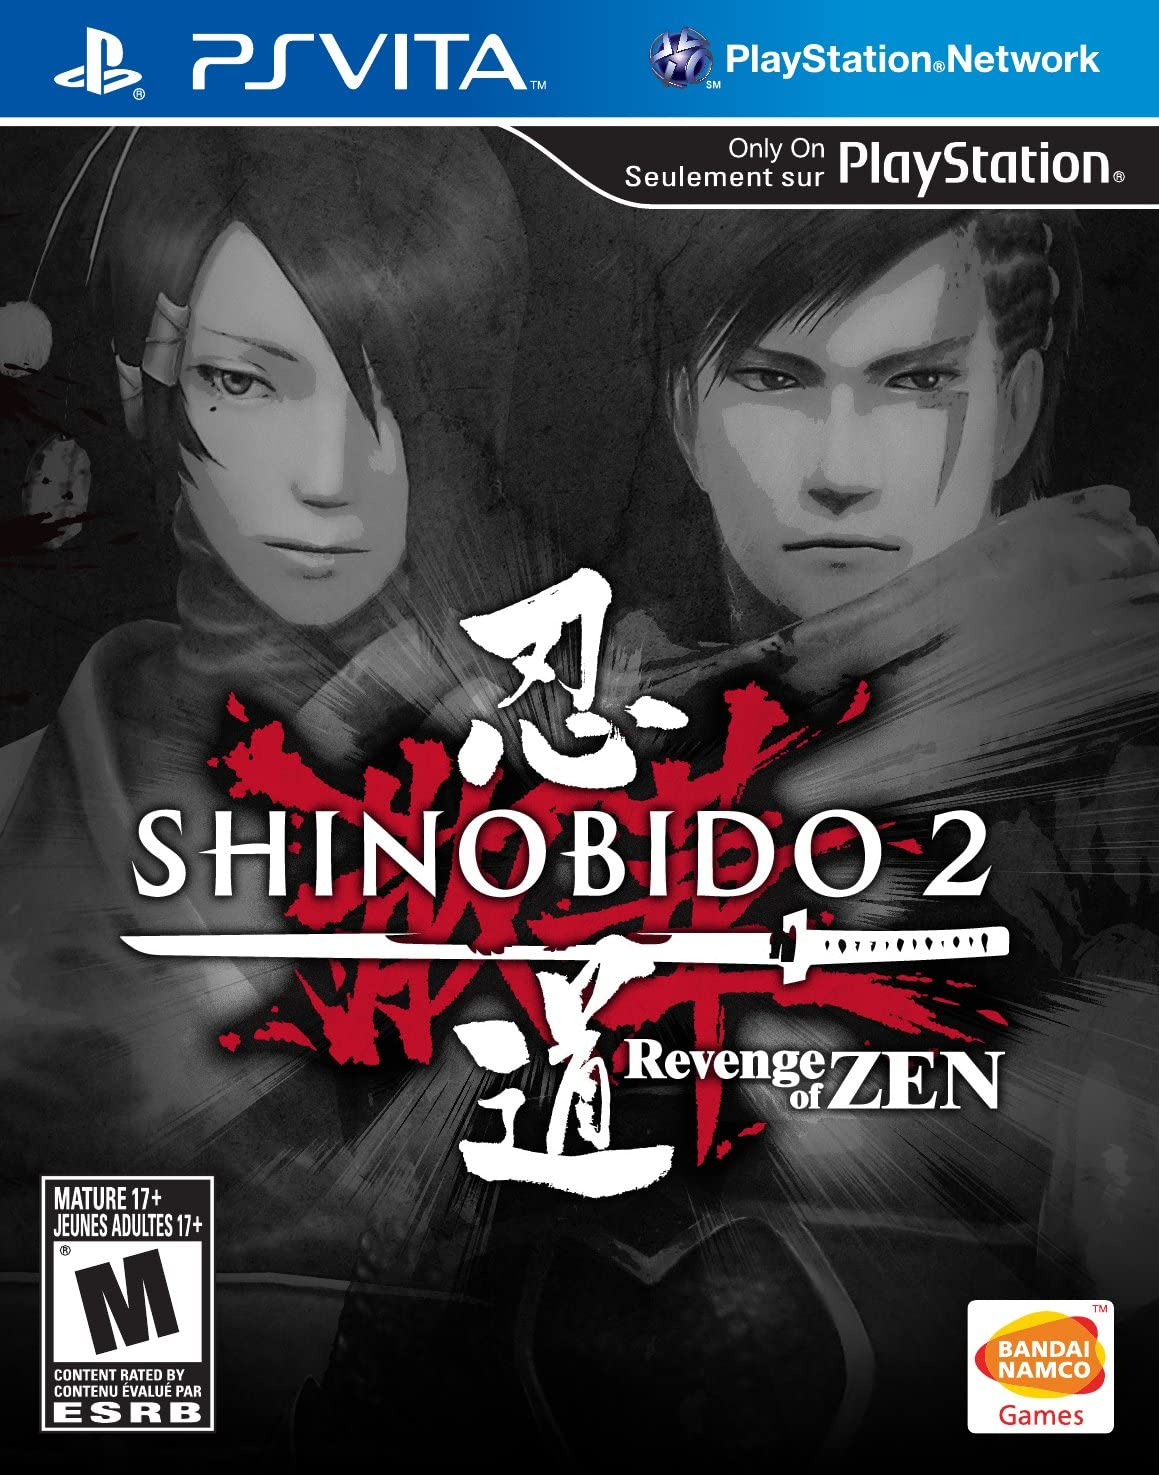 Amazon.com: Shinobido 2: Revenge of Zen - PlayStation Vita ...